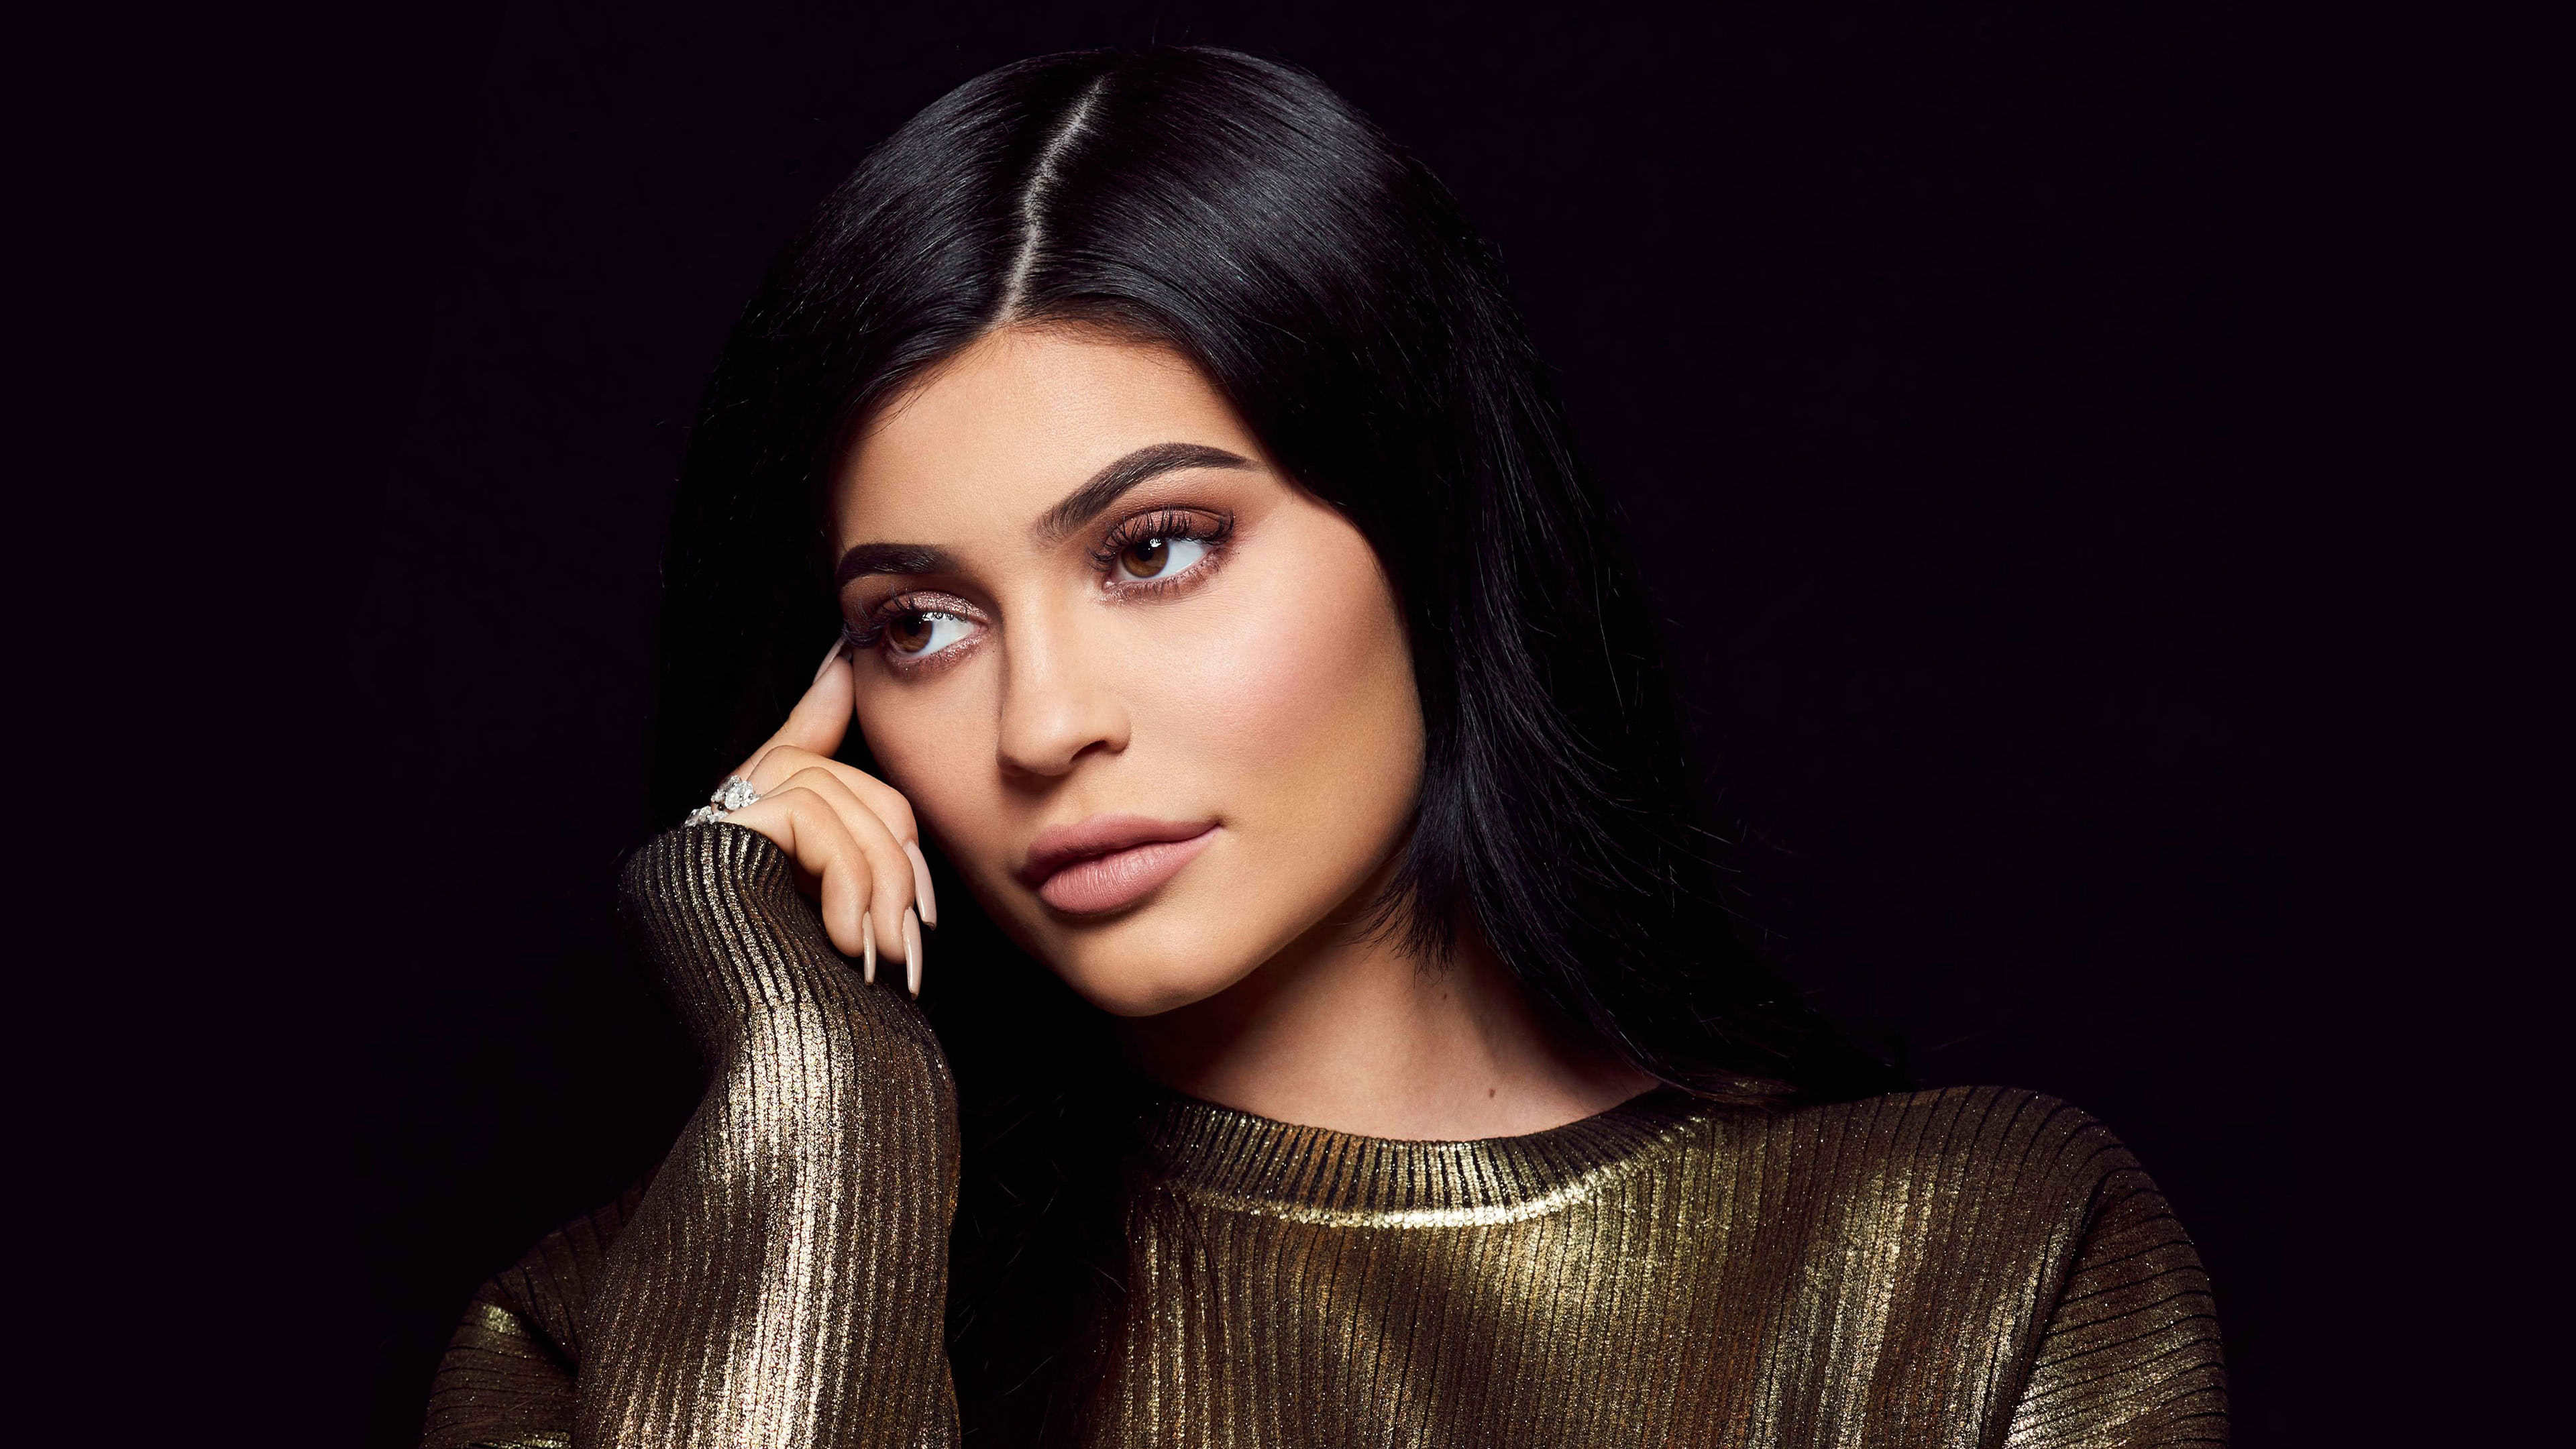 19 Kylie Jenner 2019 Wallpapers On Wallpapersafari